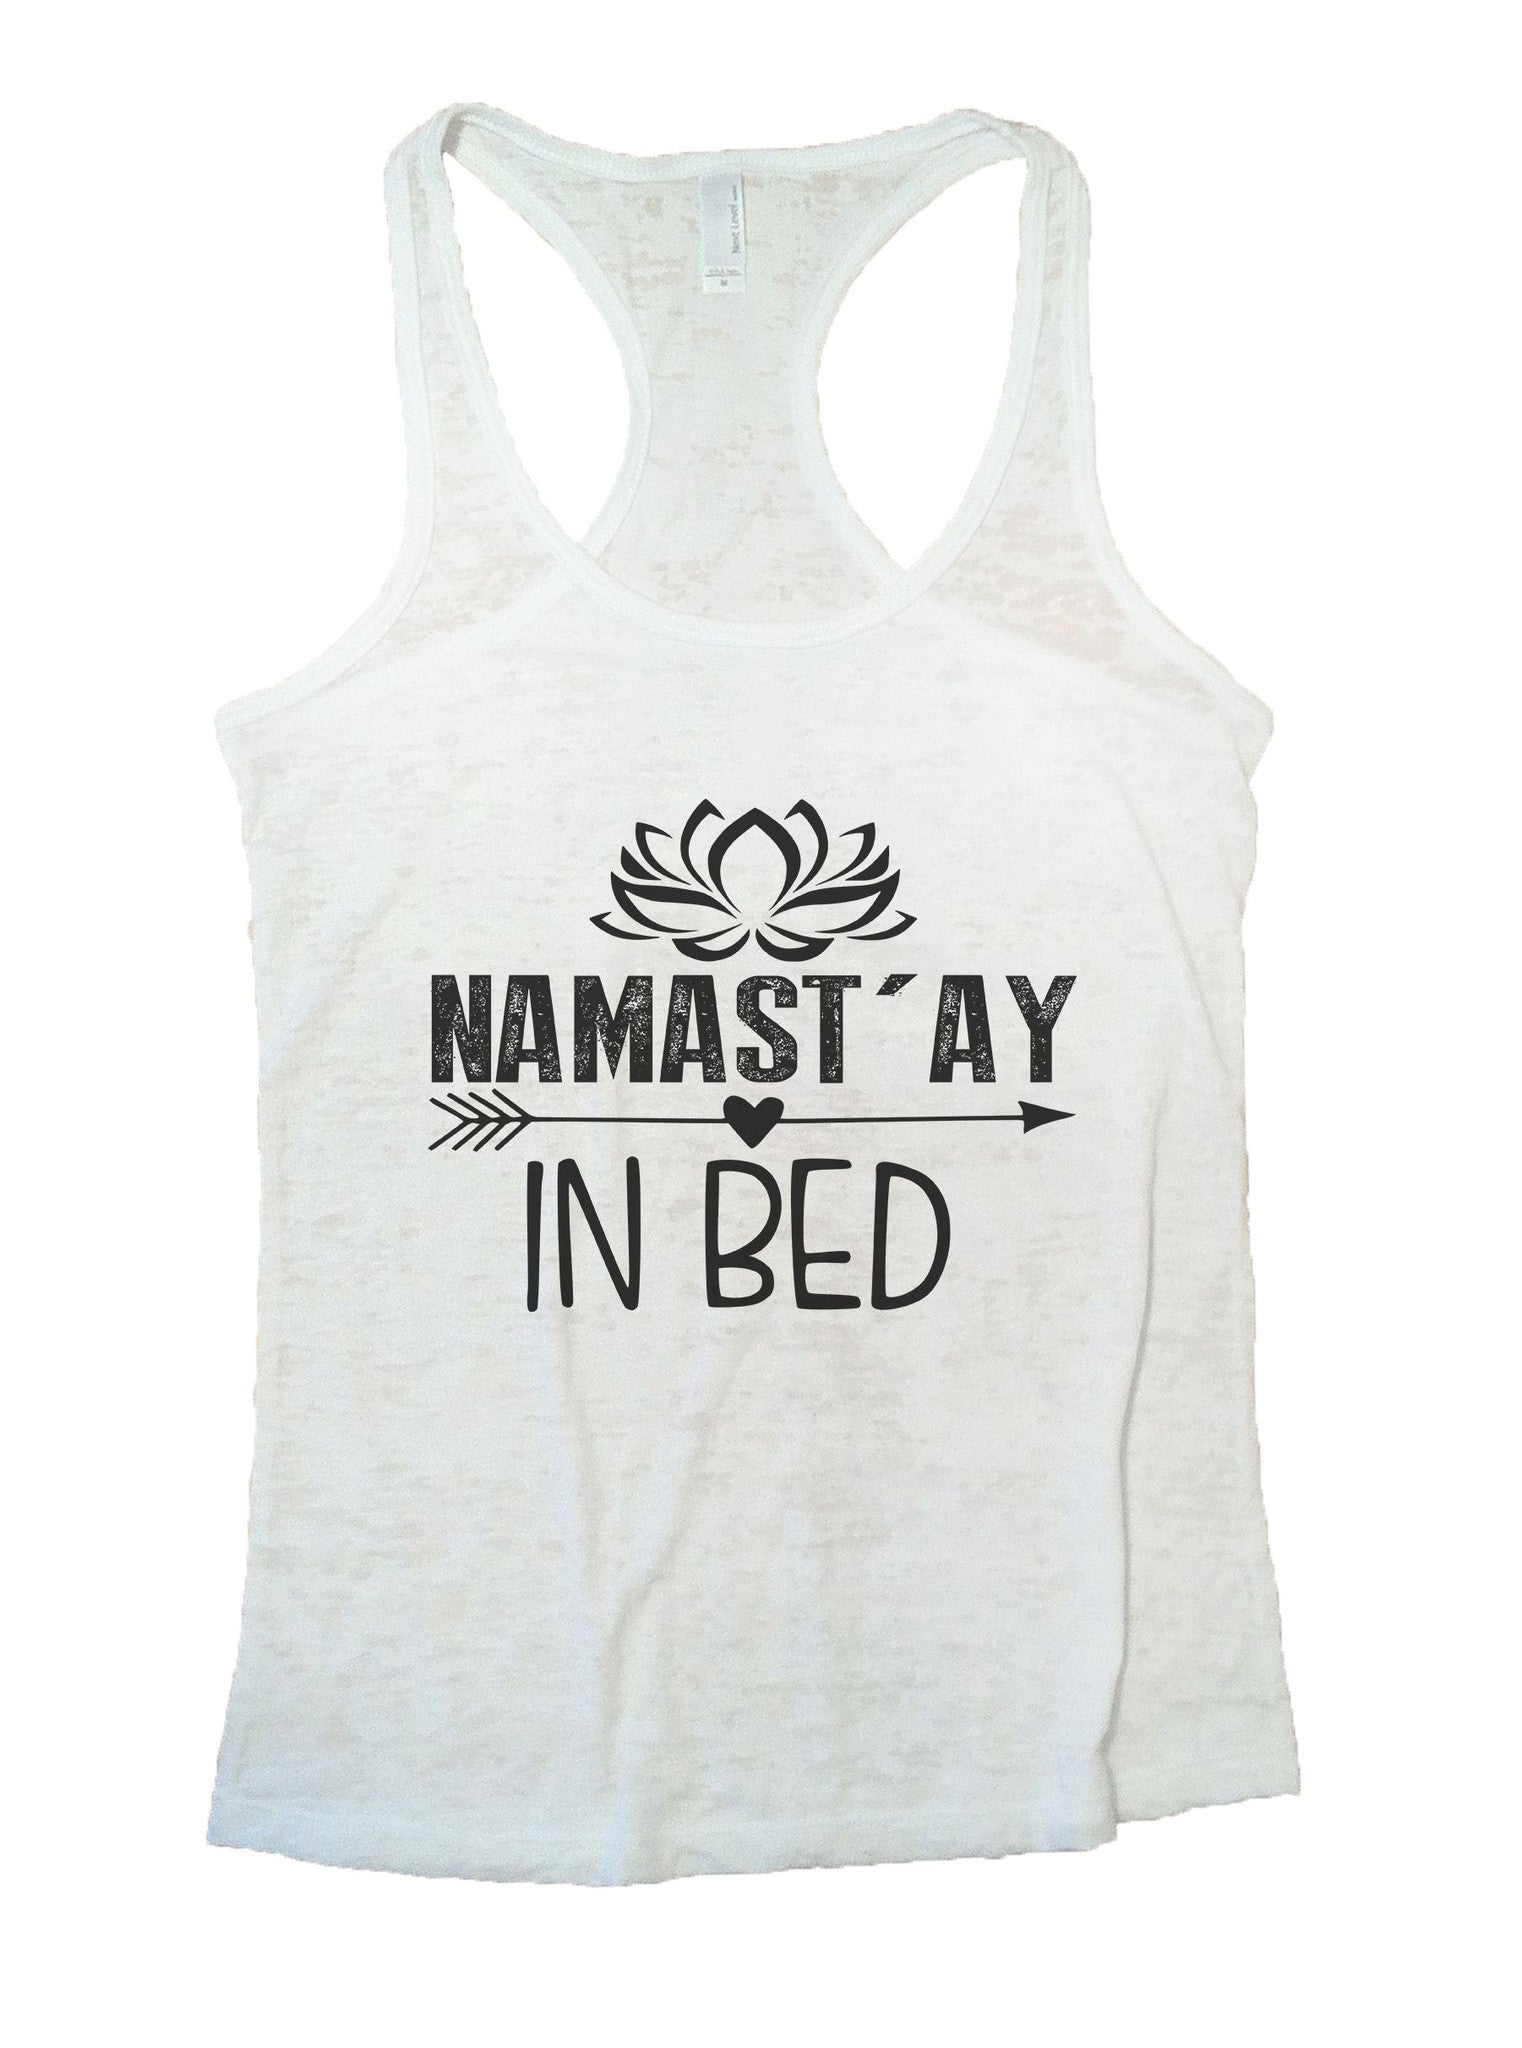 Namastay In Bed Burnout Tank Top By BurnoutTankTops.com - 915 - Funny Shirts Tank Tops Burnouts and Triblends  - 5